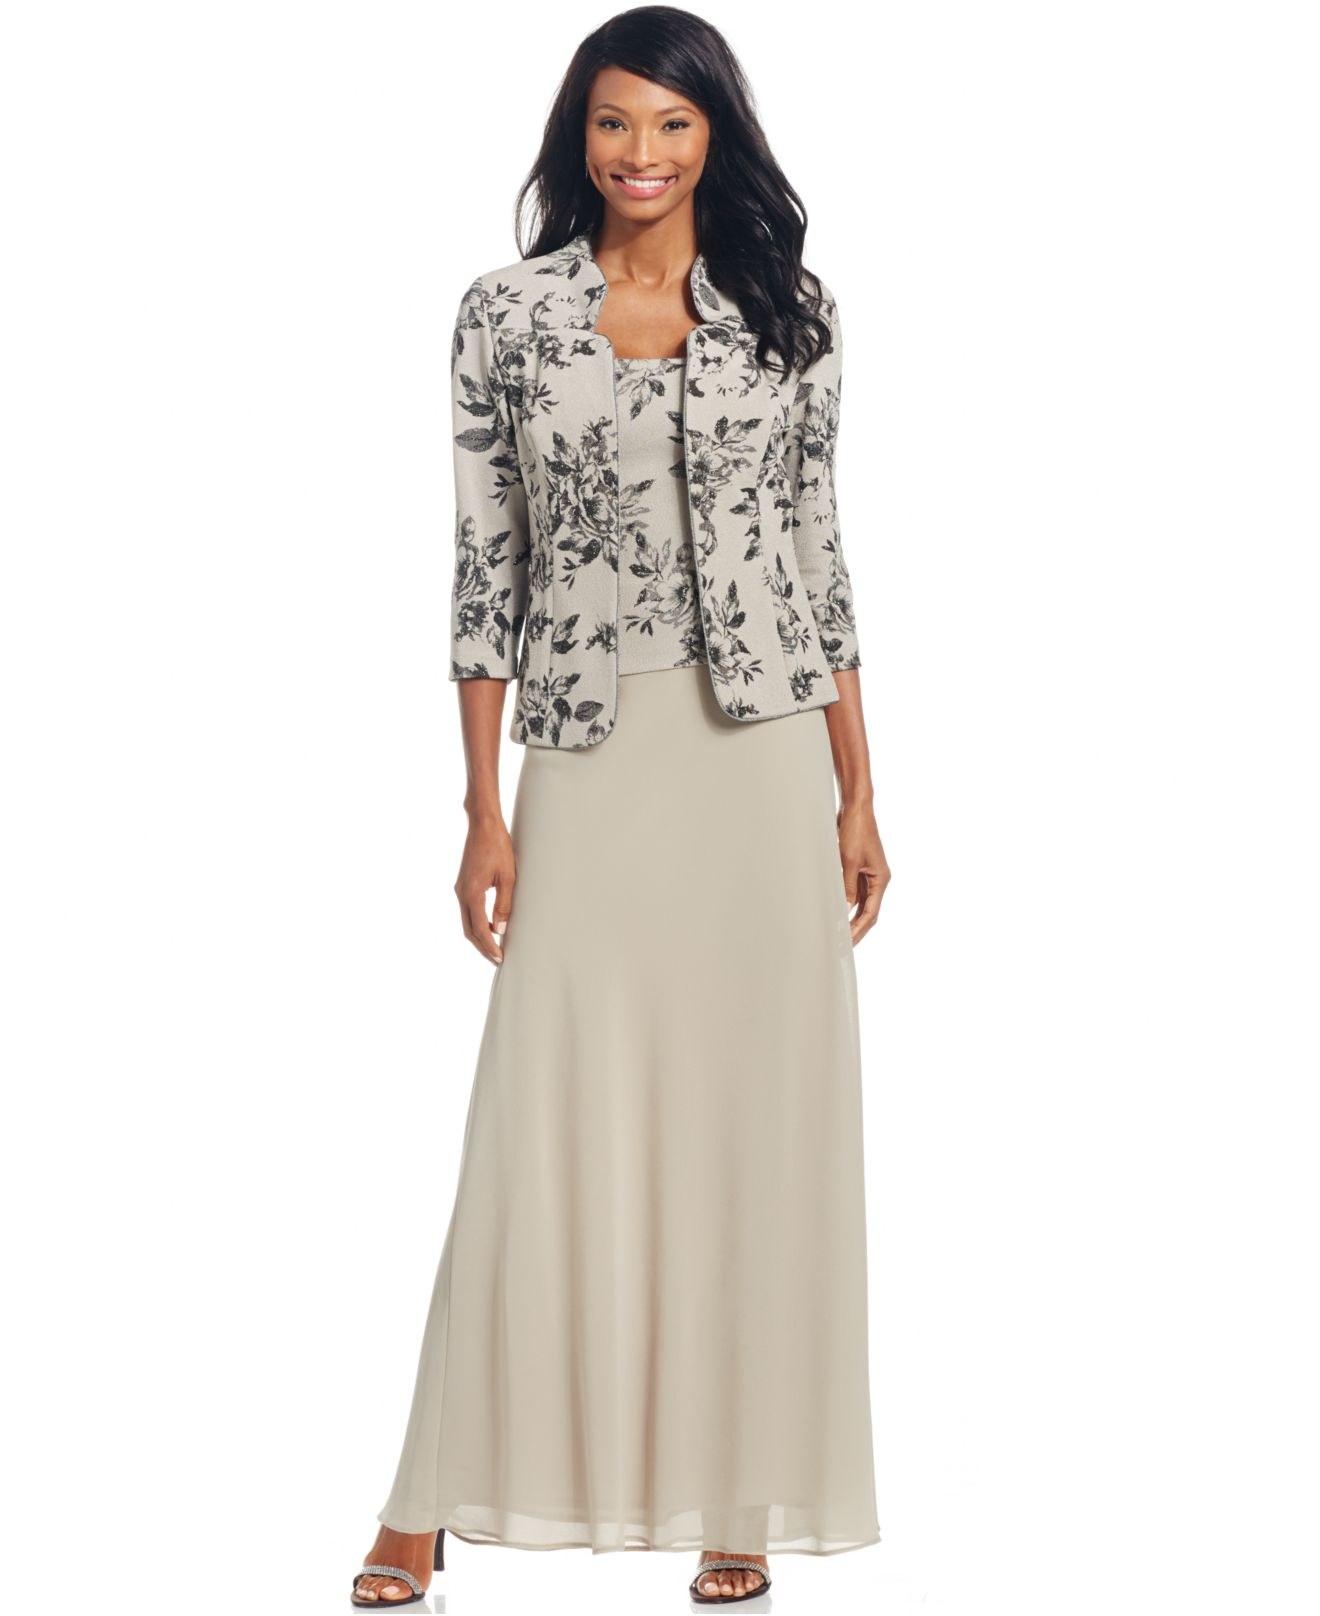 Lyst - Alex Evenings Petite Floral-print Gown And Jacket in Gray